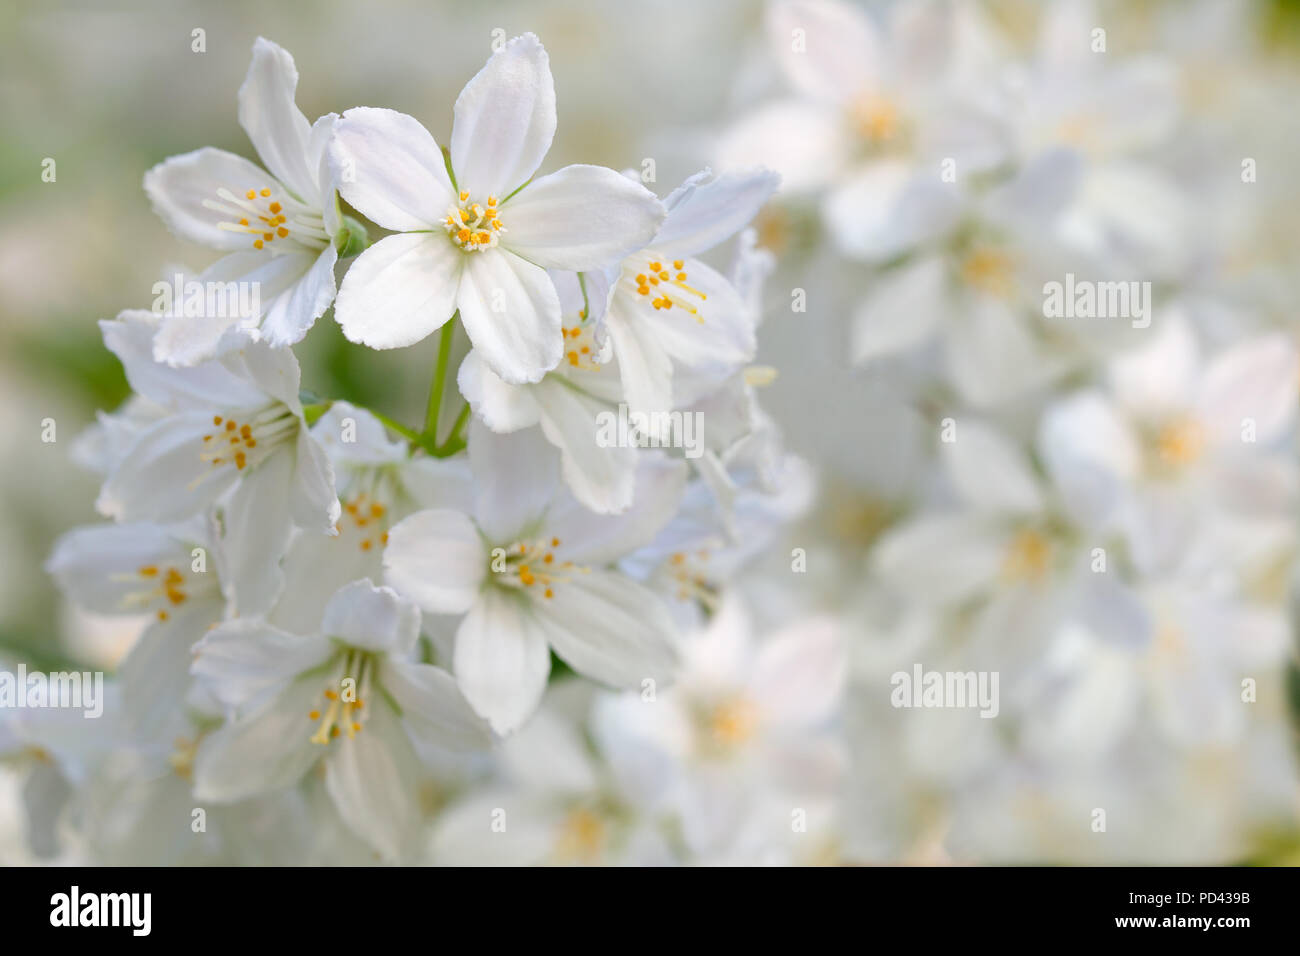 White jasmine flowers on a branch on a bright sunny day stock photo white jasmine flowers on a branch on a bright sunny day izmirmasajfo